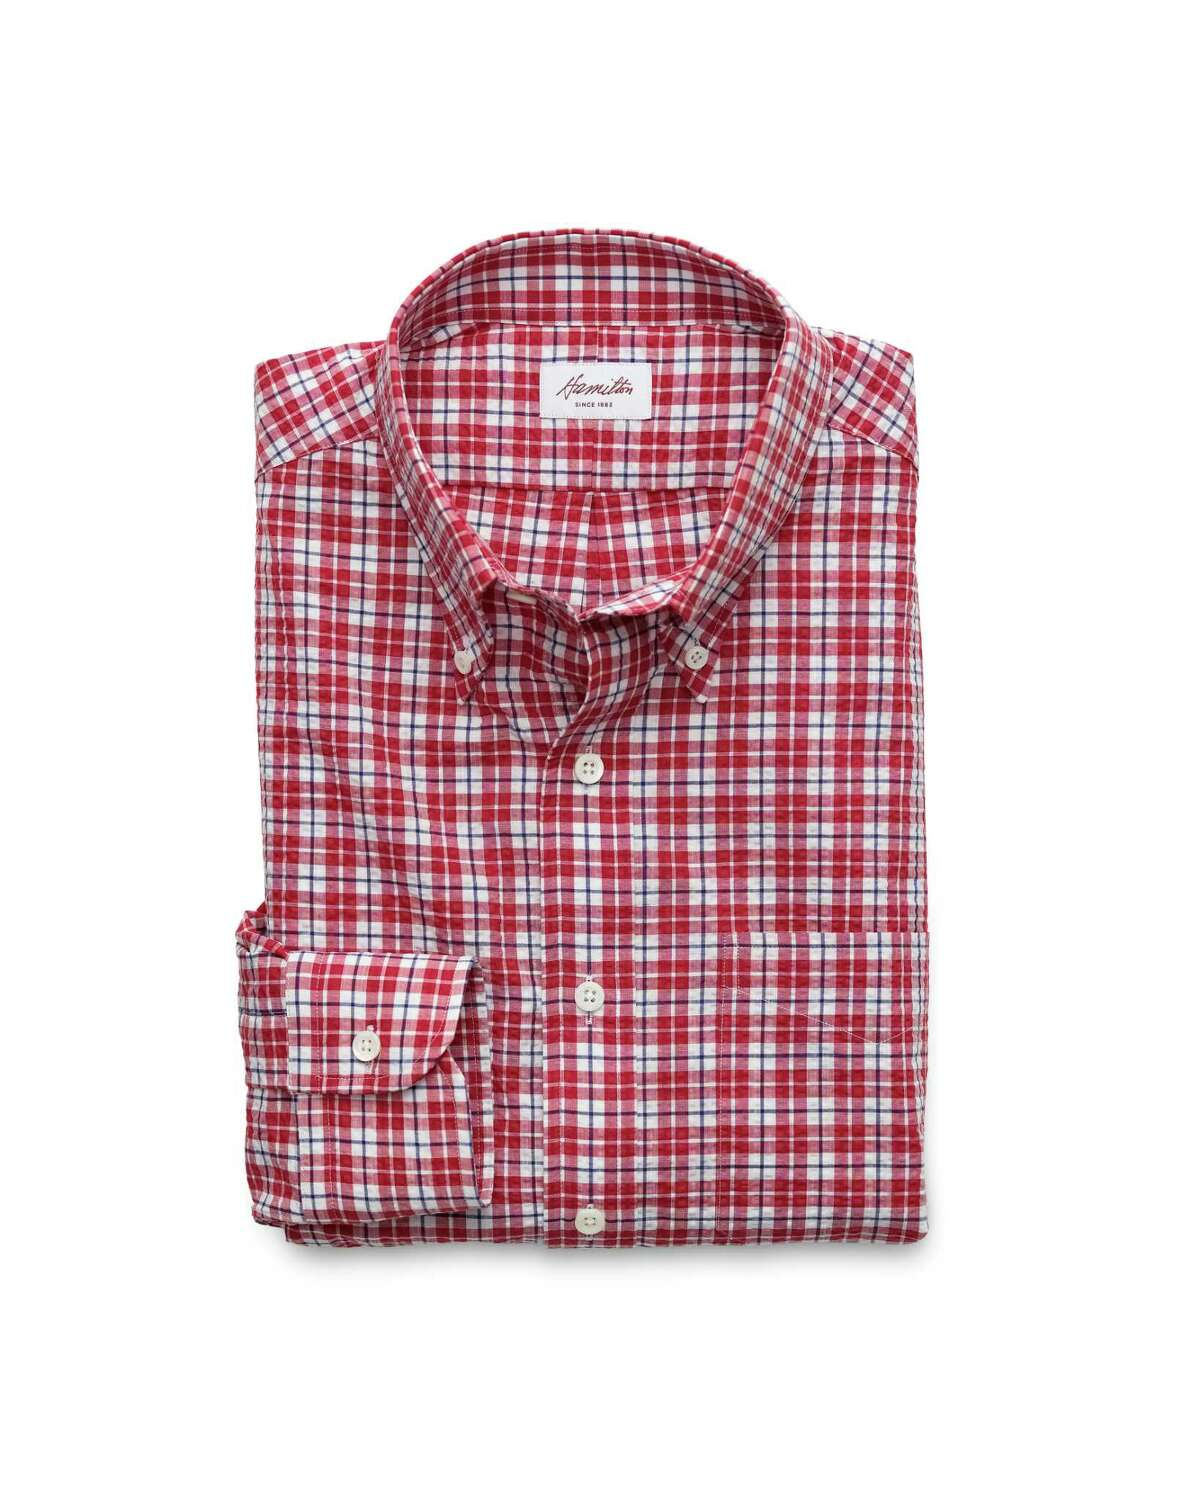 Hamilton Shirts, Houston's legendary home for finest threads, will have dad doing the happy dance with this red, navy and white plaid seersucker charmer; $245 at Hamilton store, 5700 Richmond or hamiltonshirts.com.